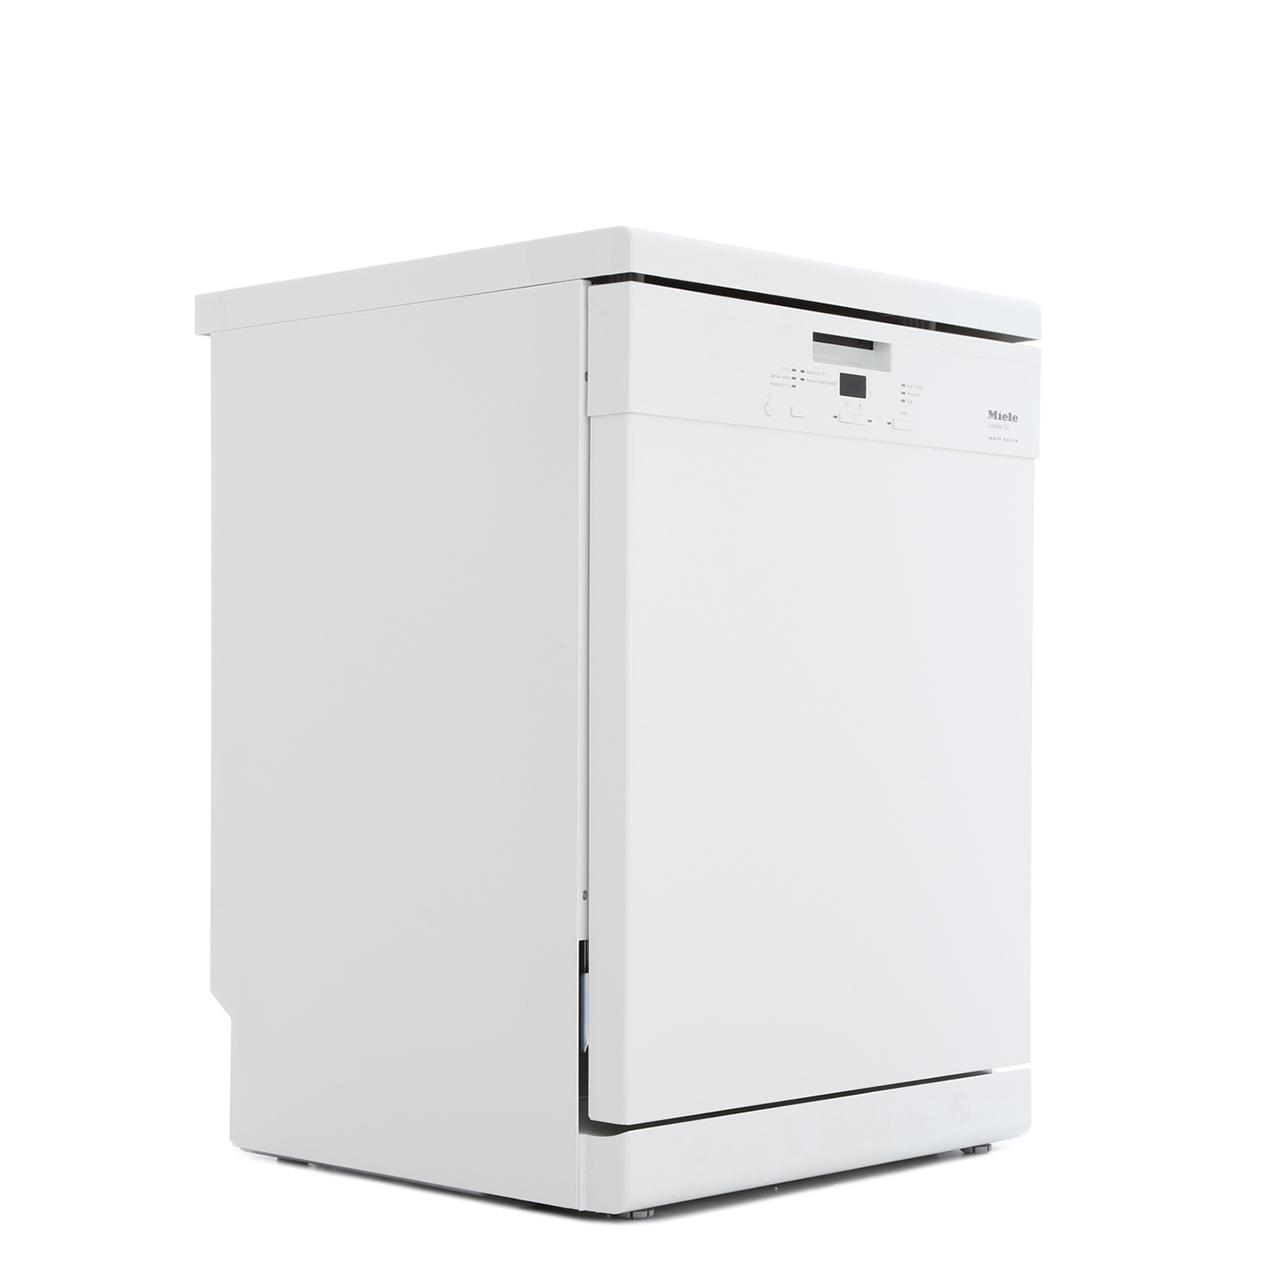 Miele G4940SC Jubilee White Dishwasher